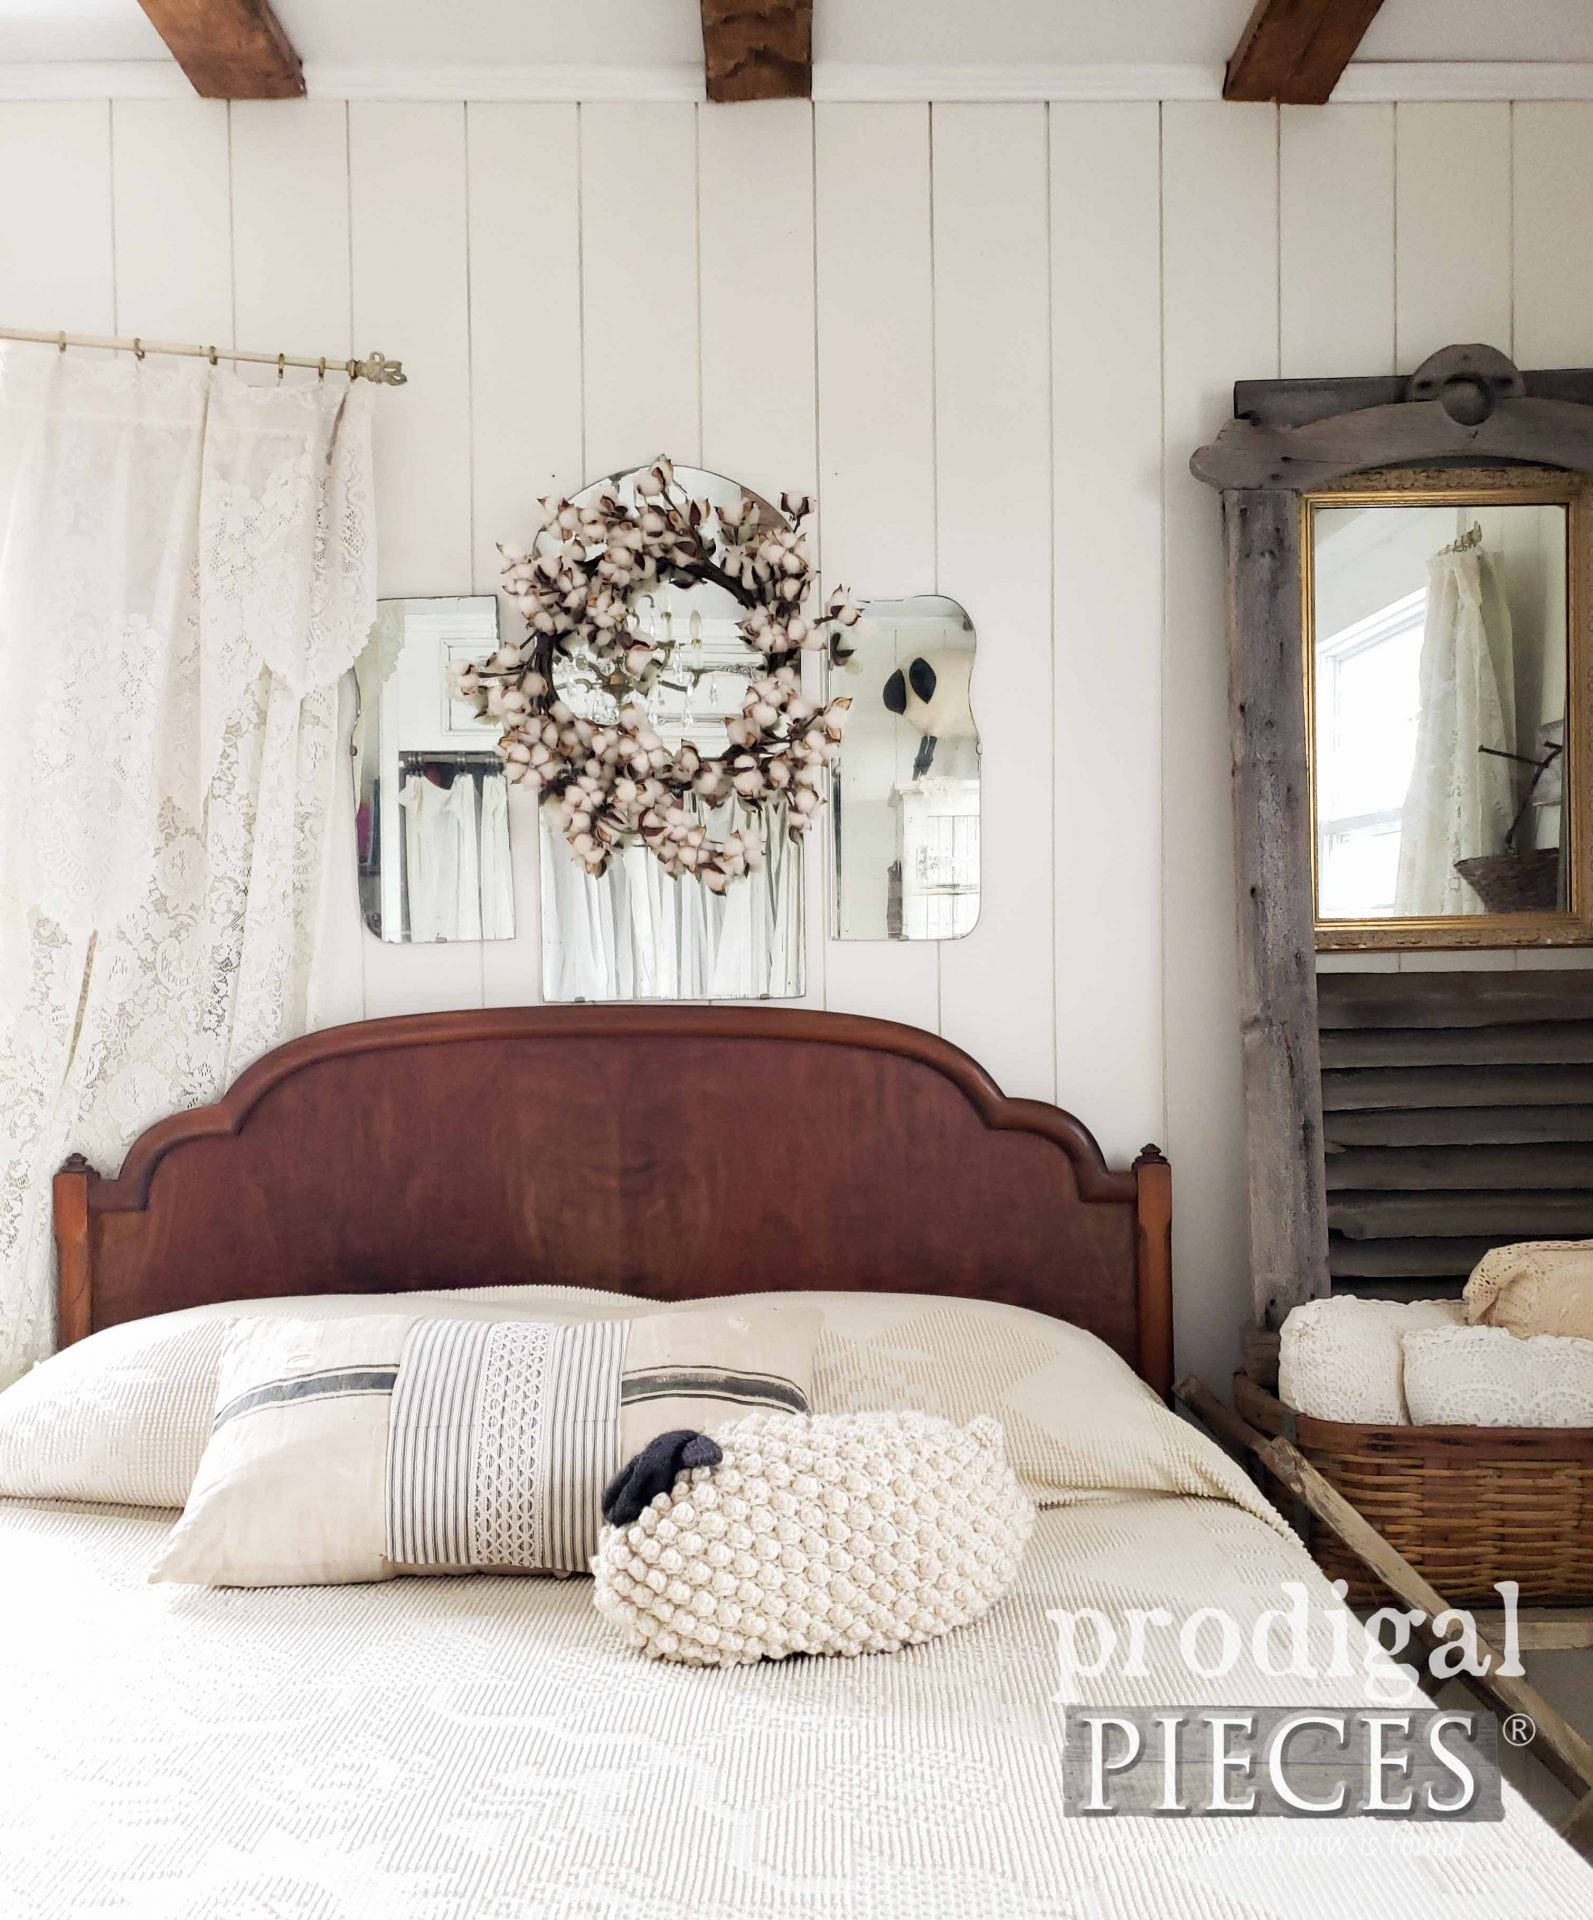 Antique Farmhouse Bedroom by Larissa of Prodigal Pieces | prodigalpieces.com #prodigalpieces #home #farmhouse #bedroom #homedecor